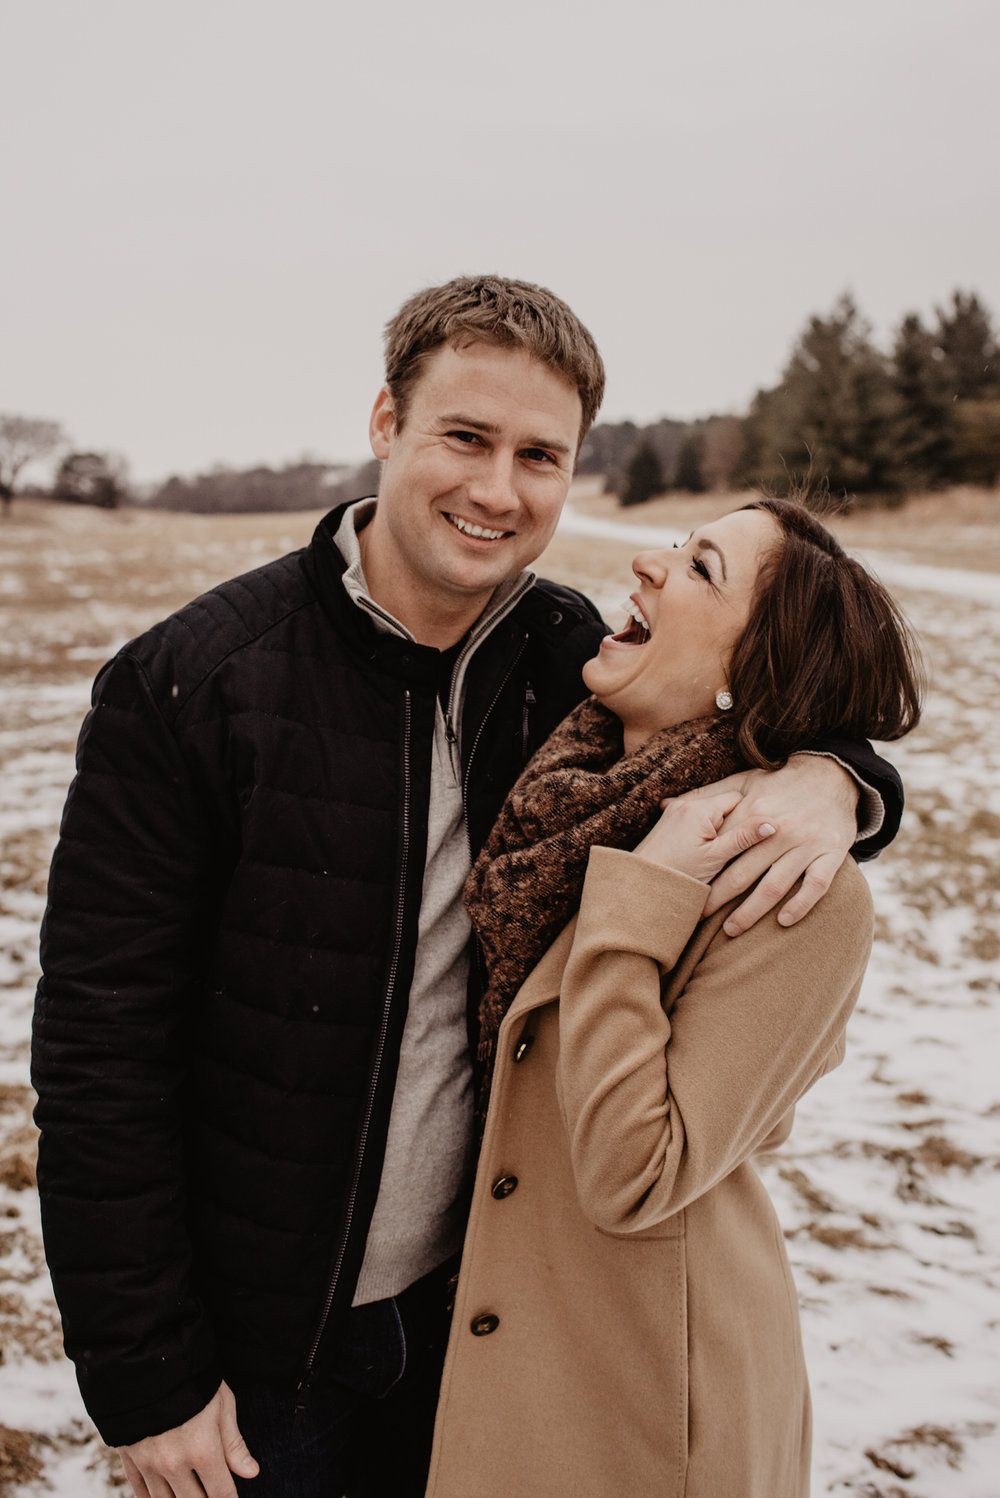 Lincoln-Columbus-Nebraska-Winter-Engagement-Kaylie-Sirek-Photography-17.jpg